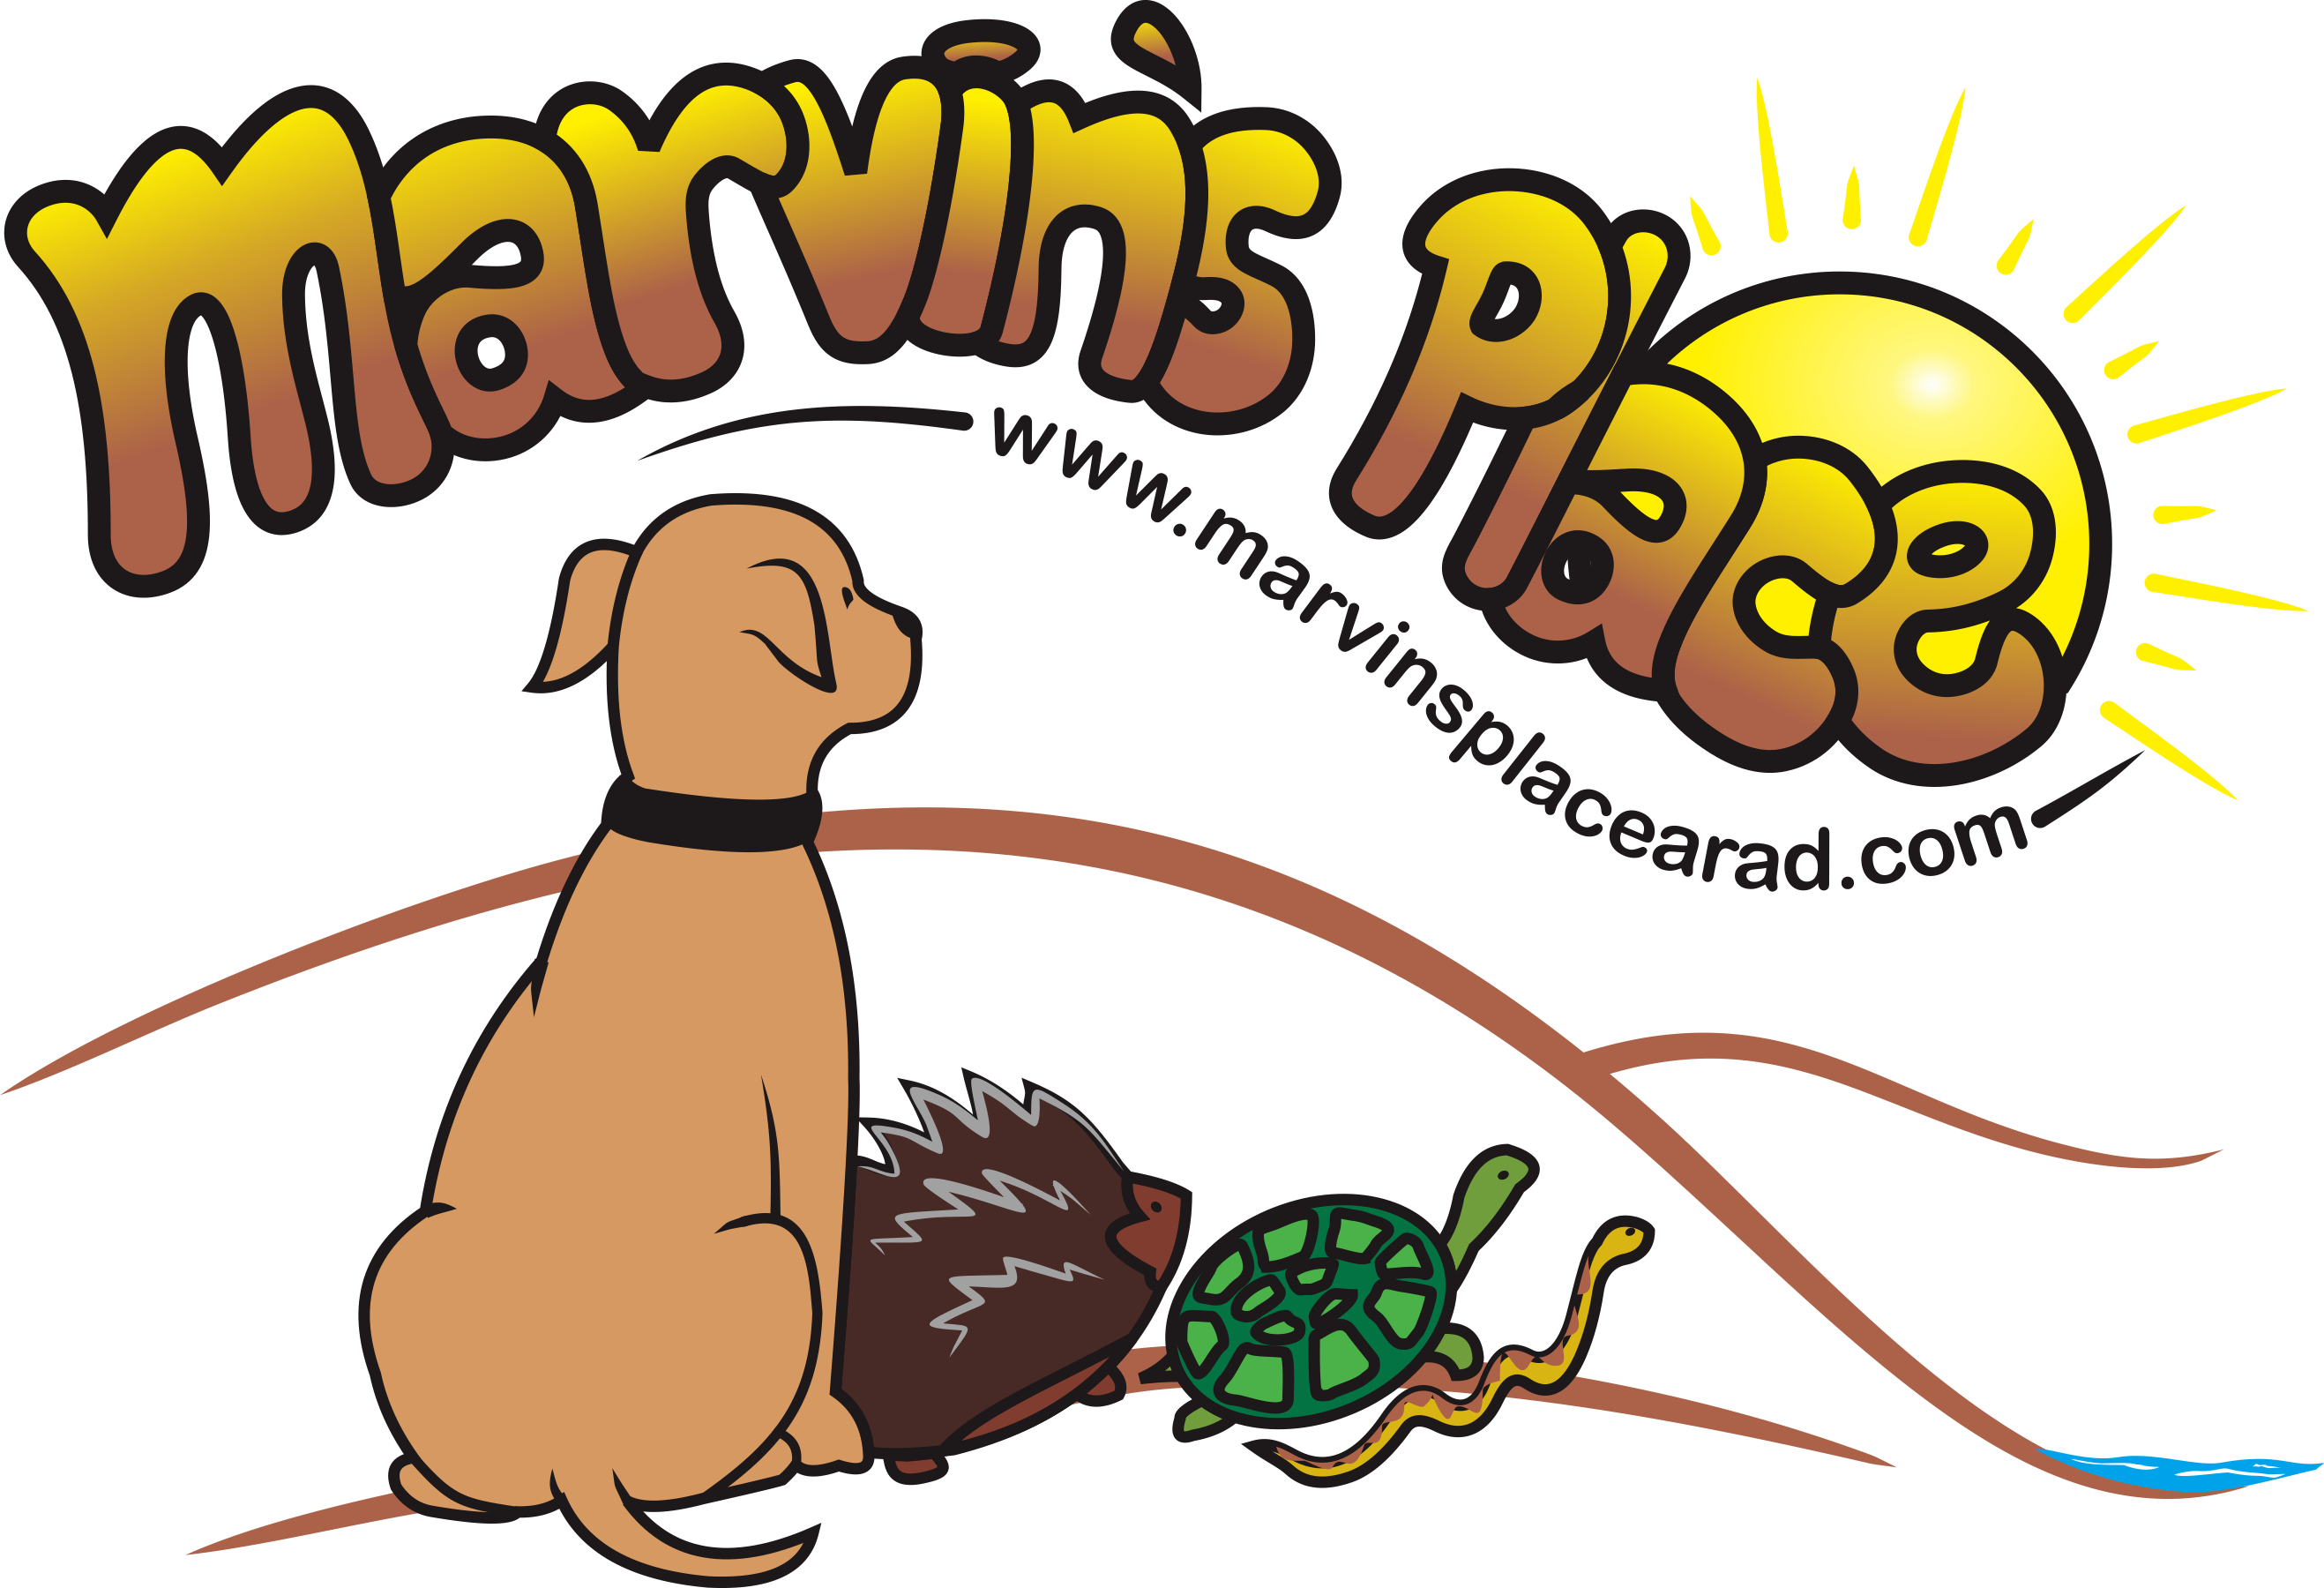 Marvin's Place